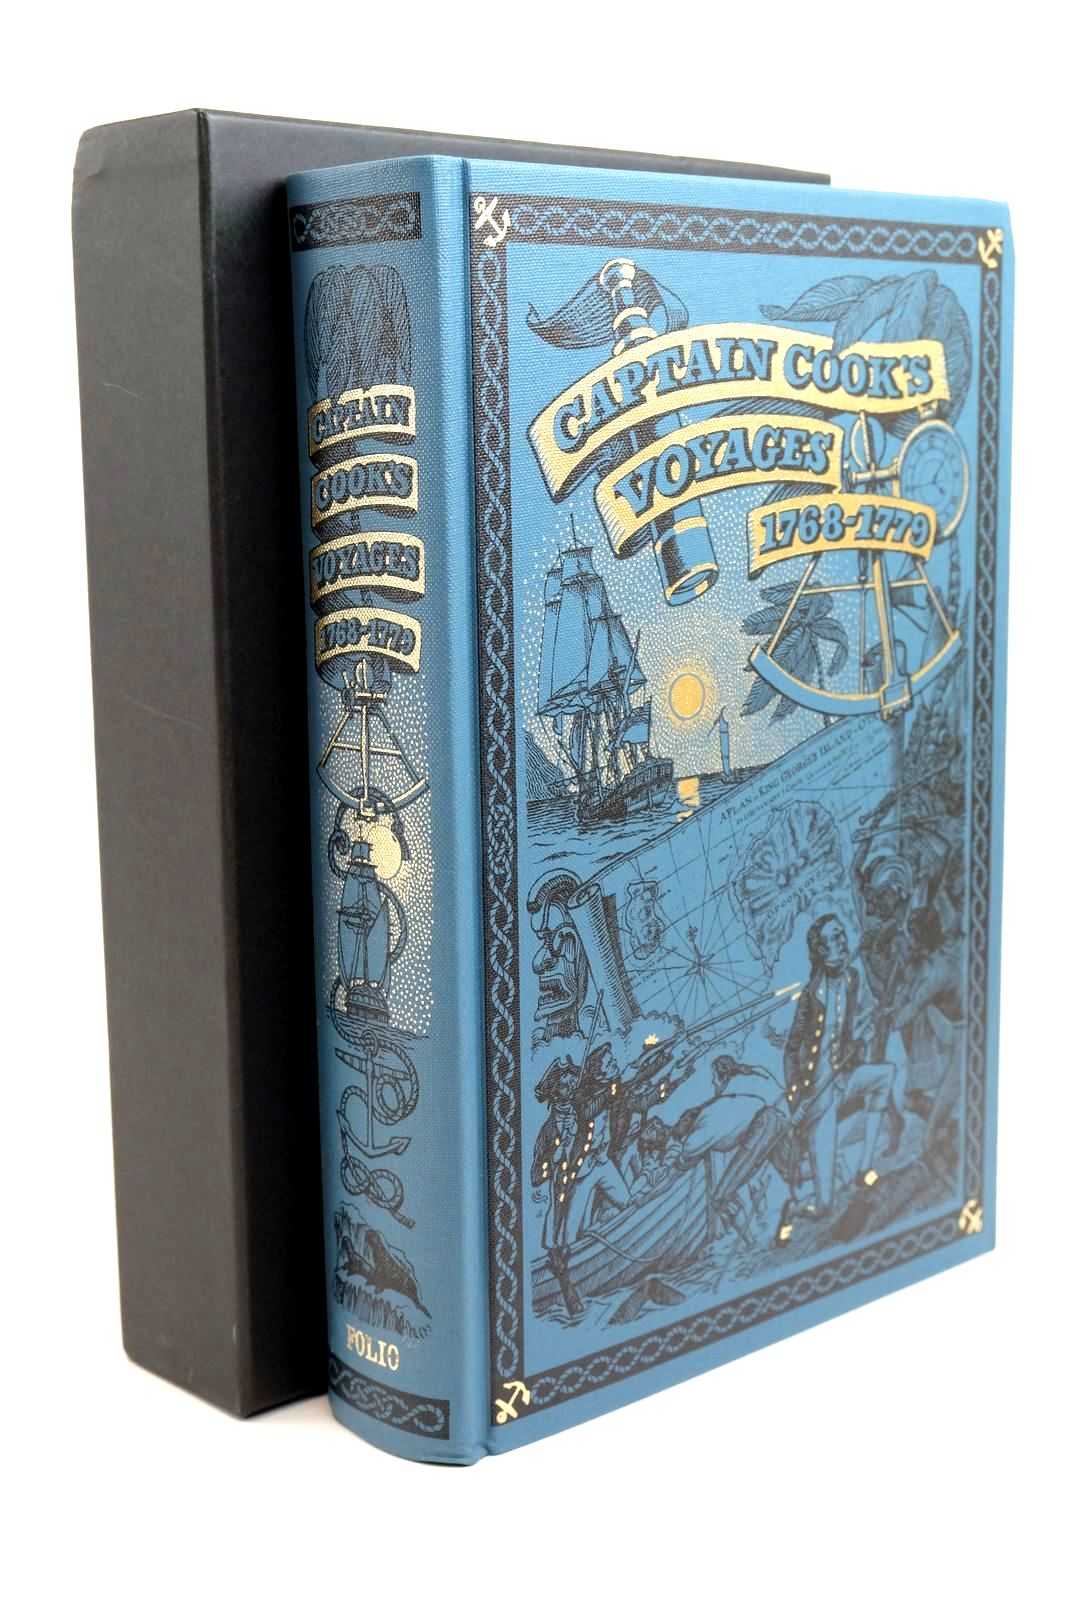 Photo of CAPTAIN COOK'S VOYAGES 1768-1779 written by Cook, Captain Williams, Glyndwr published by Folio Society (STOCK CODE: 1321327)  for sale by Stella & Rose's Books